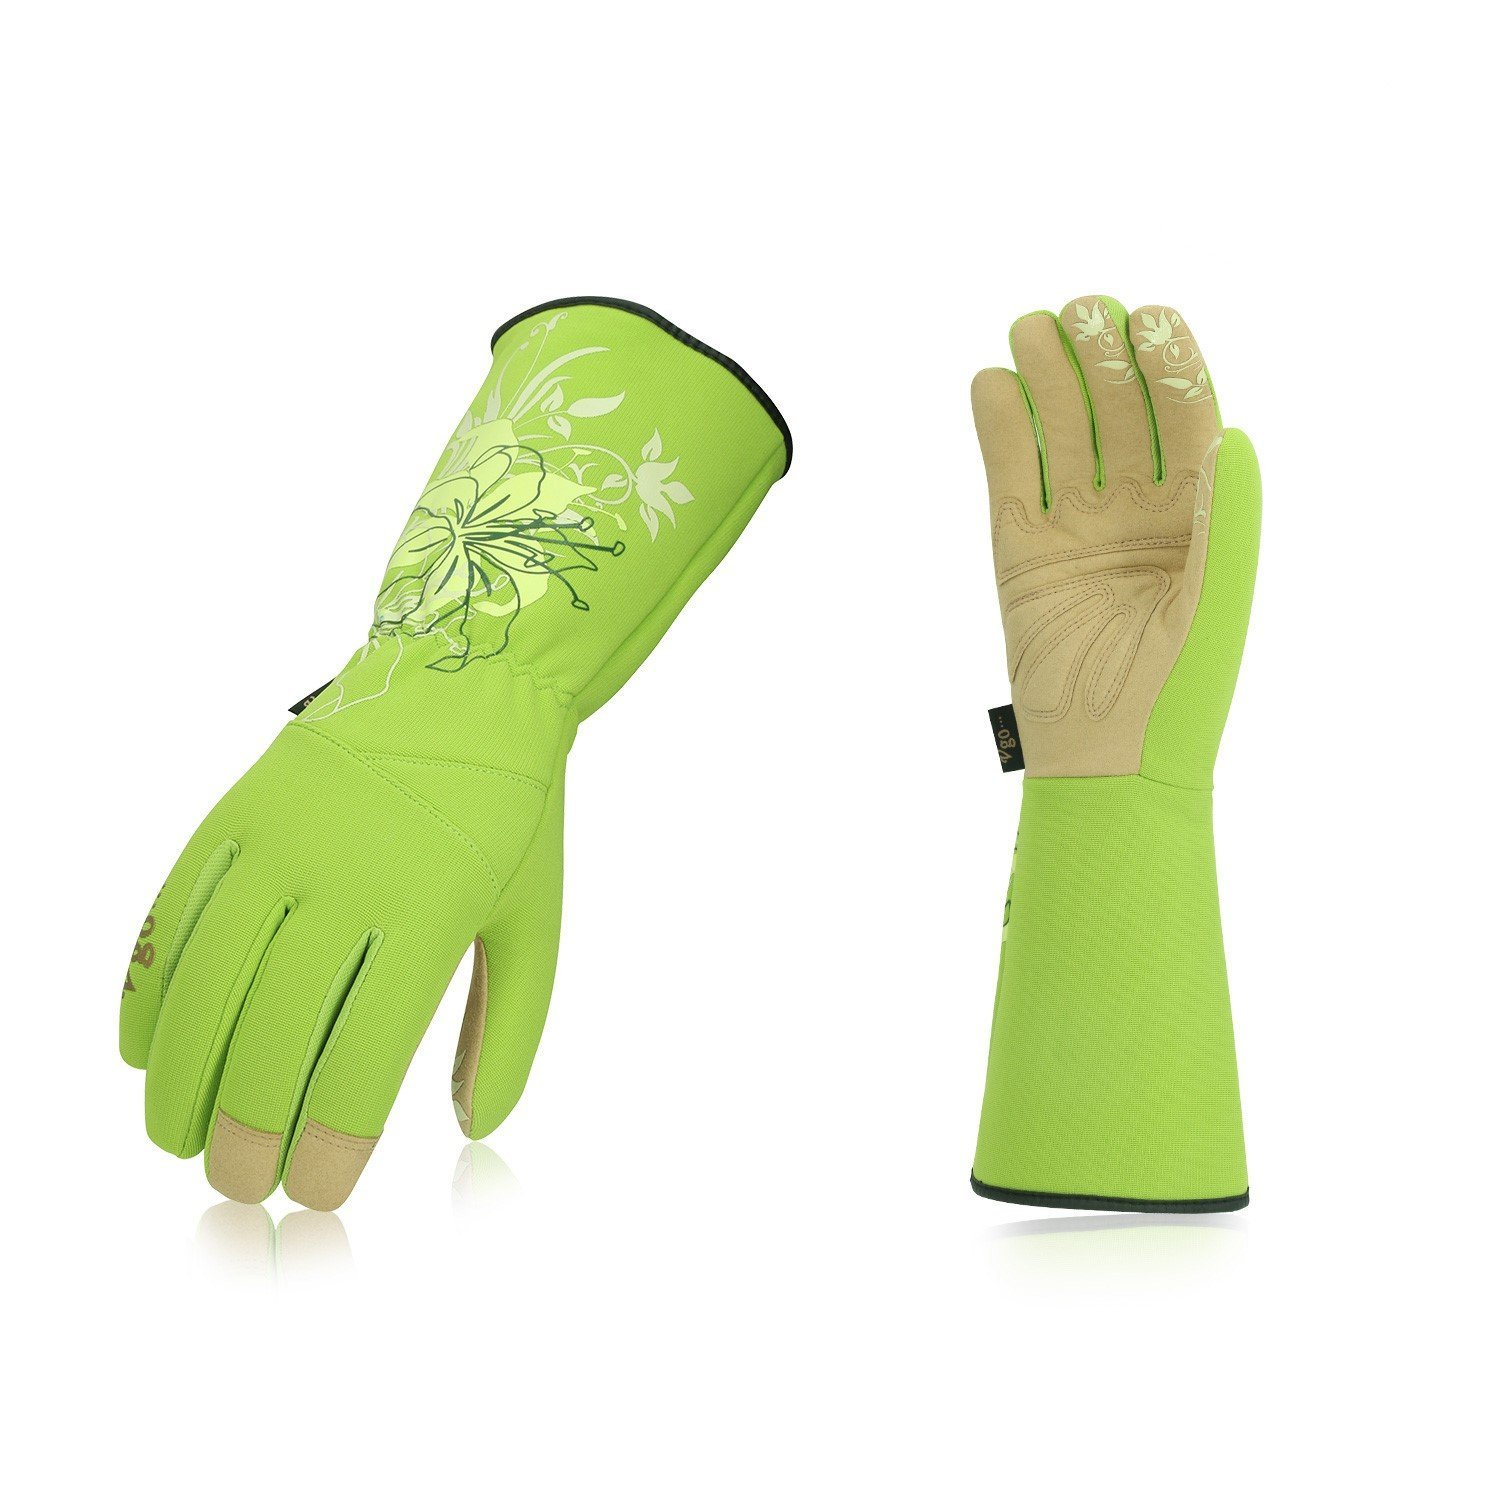 Vgo Ladies' Synthetic Leather Long Cuff Rose Garden Gloves(1Pair,Size S,Green,SL7445)